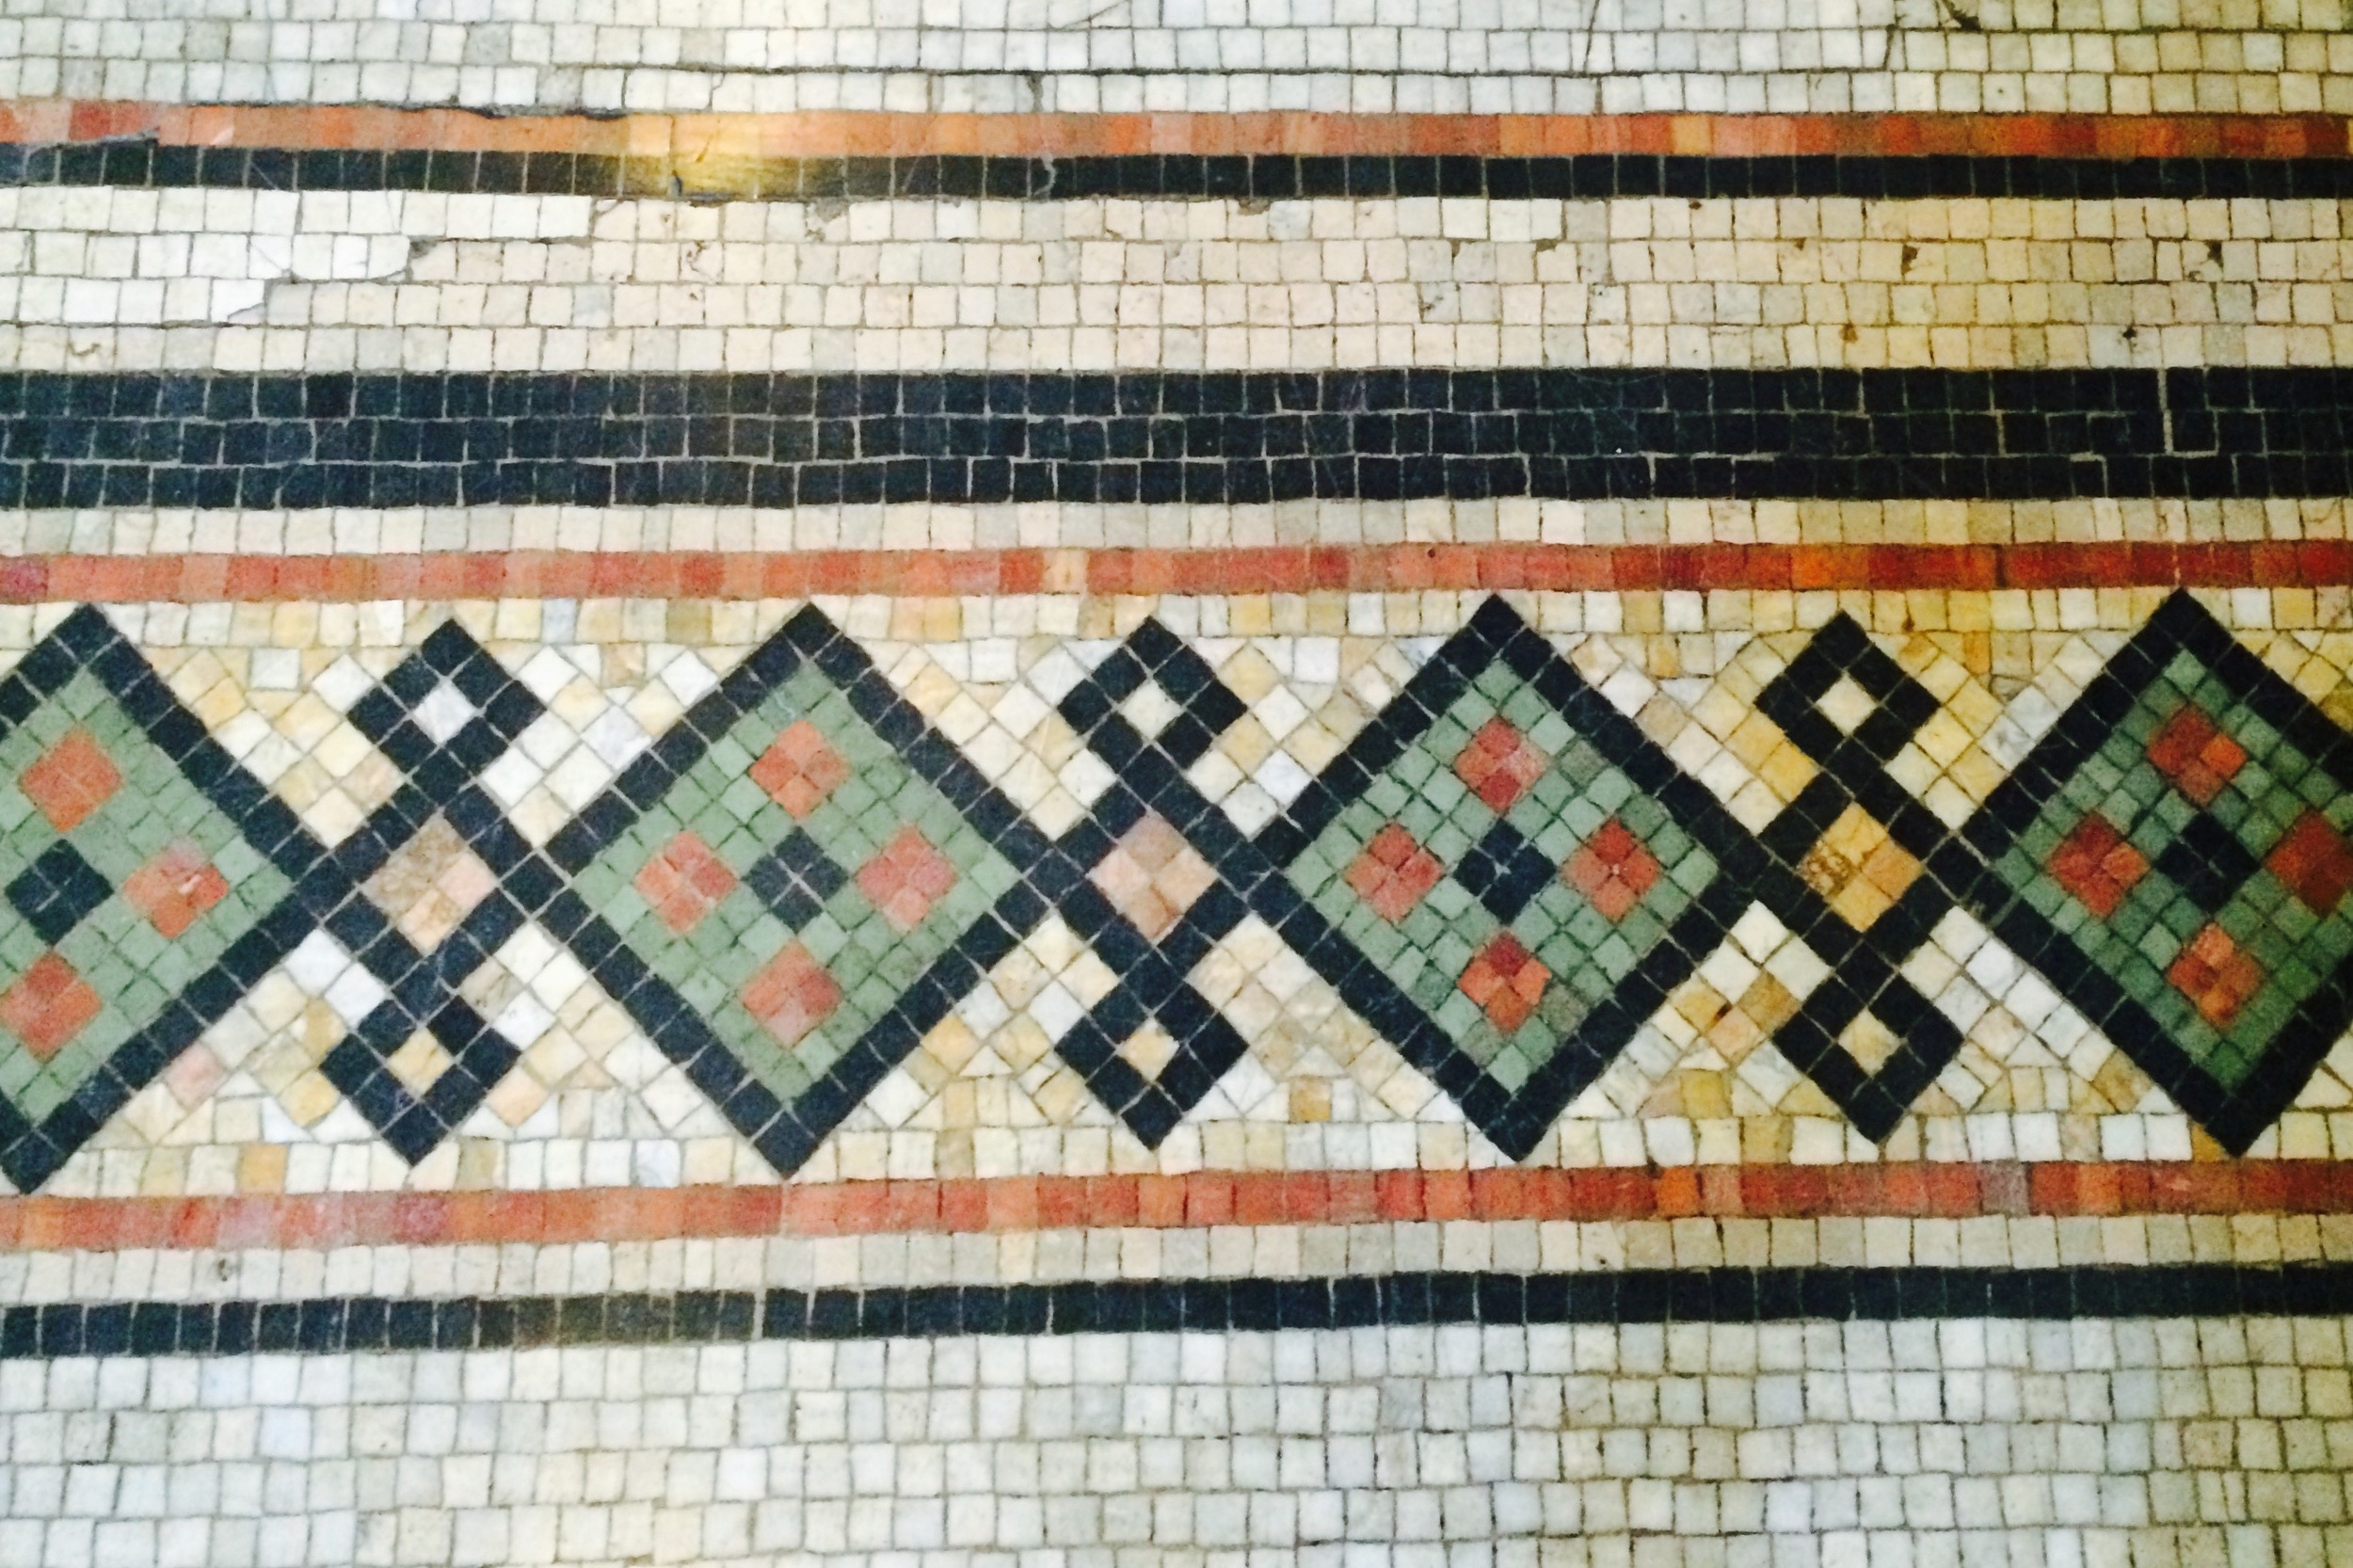 Tile work in the lobby